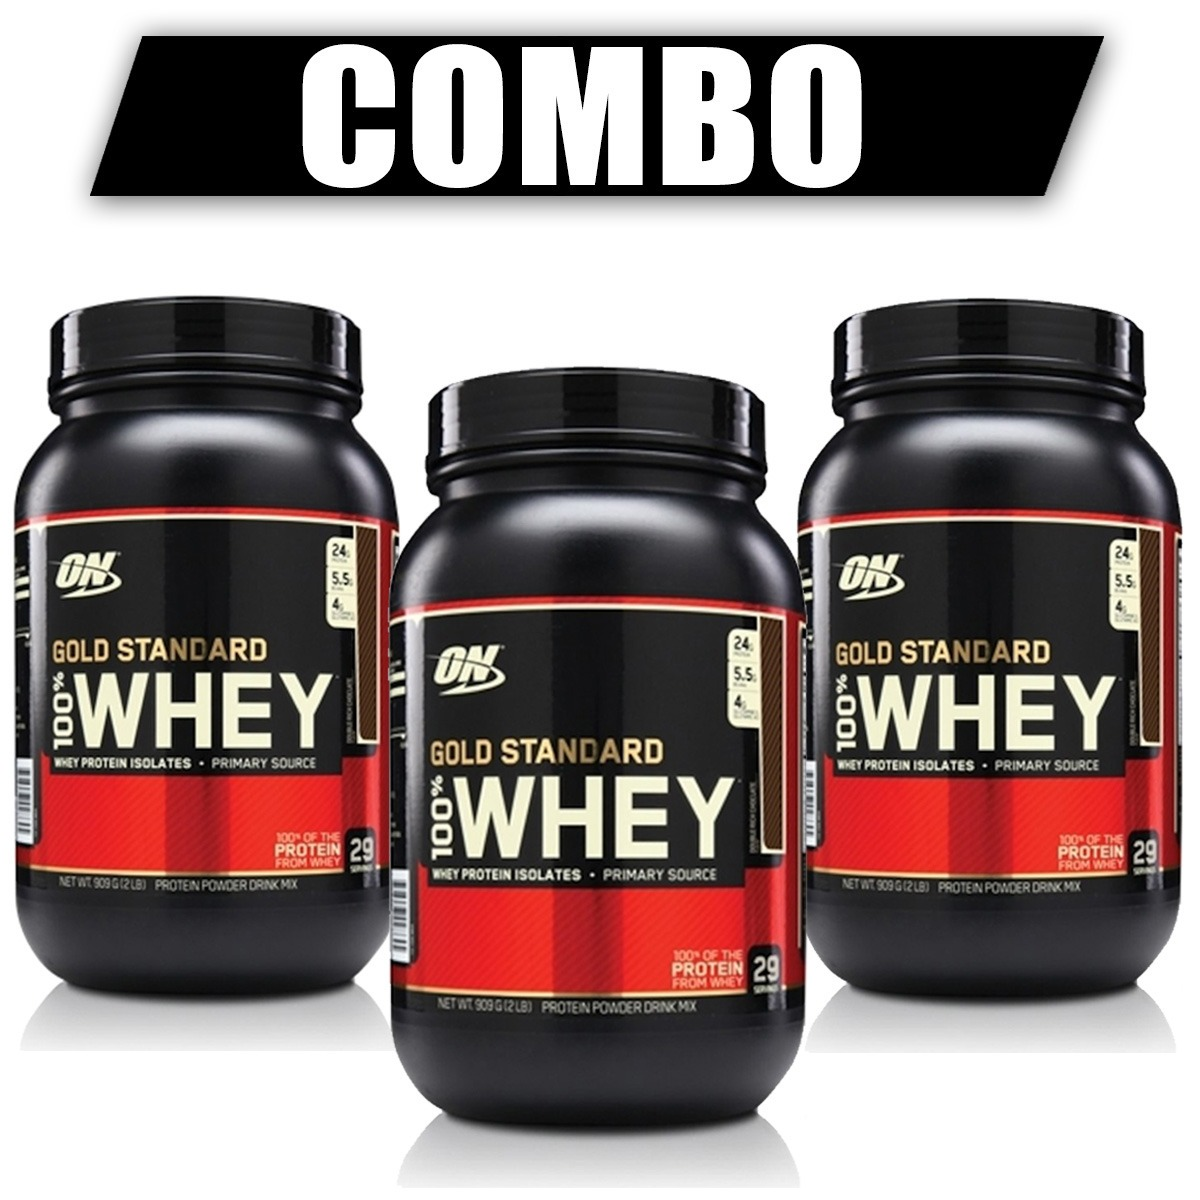 734a1843b combo 3x whey protein gold standard 900g - on optimum. Carregando zoom.